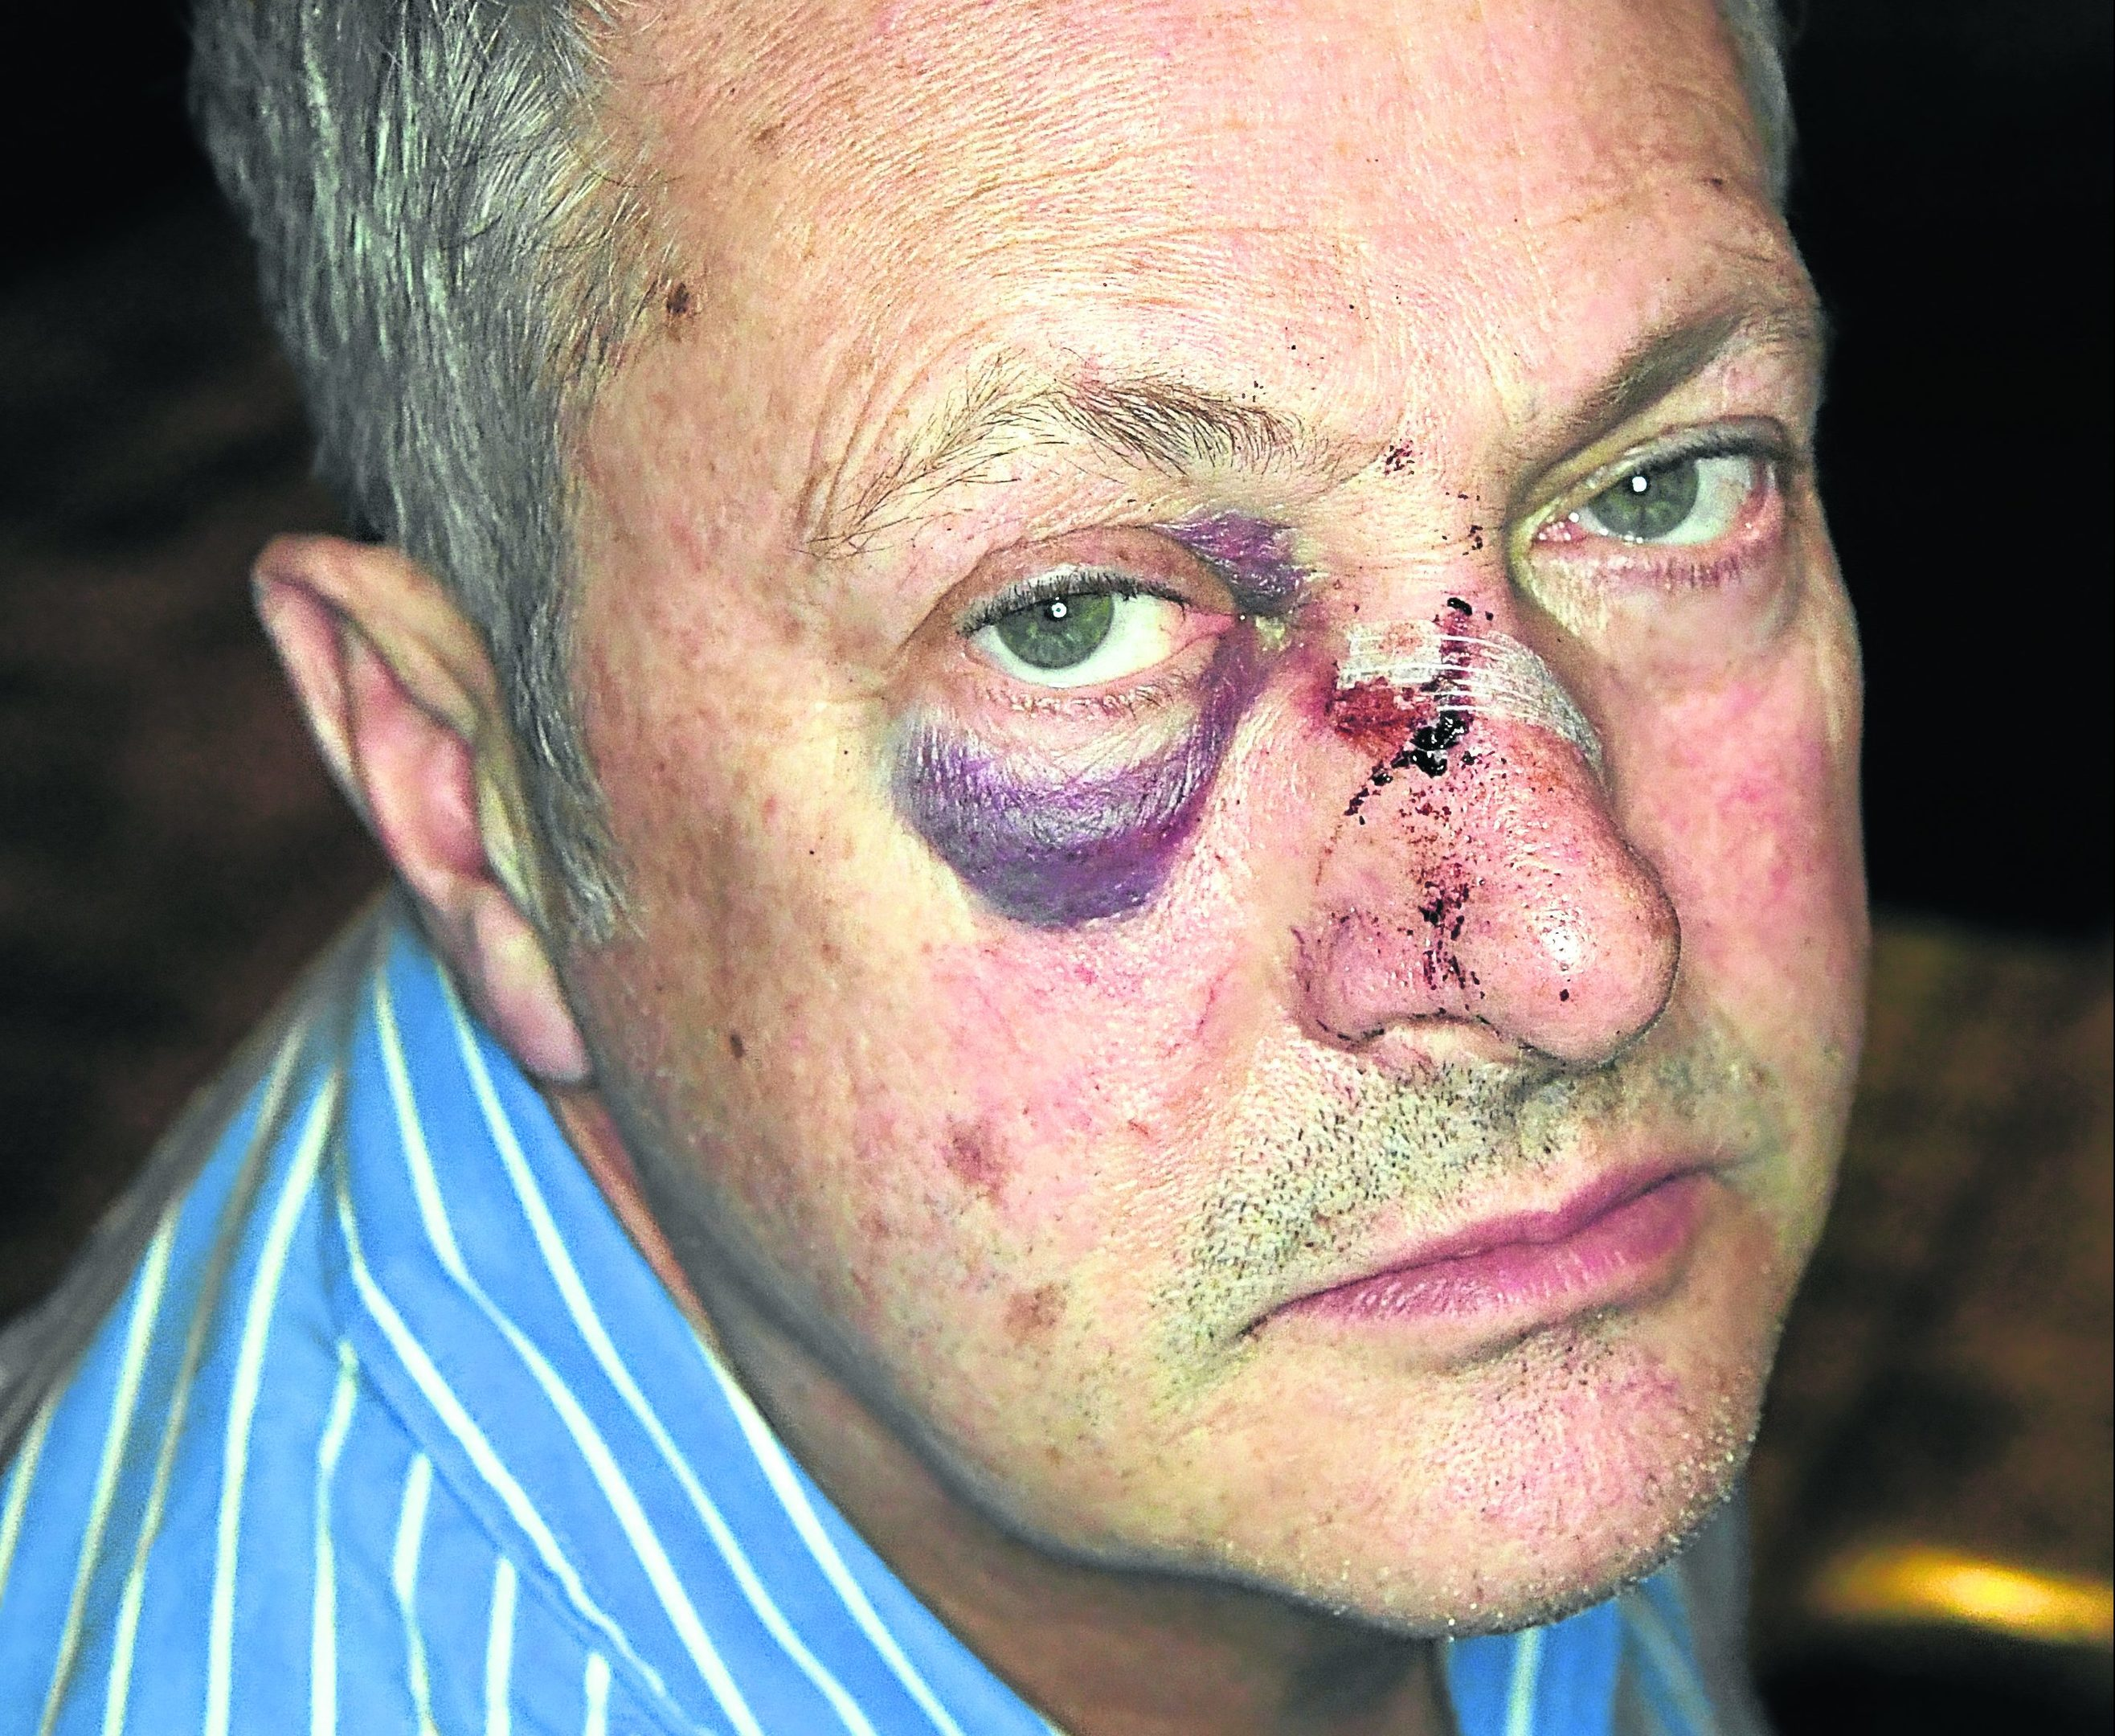 Chef Nick Nairn was attacked on Union Street  walking home from his cook school. Picture by Kami Thomson